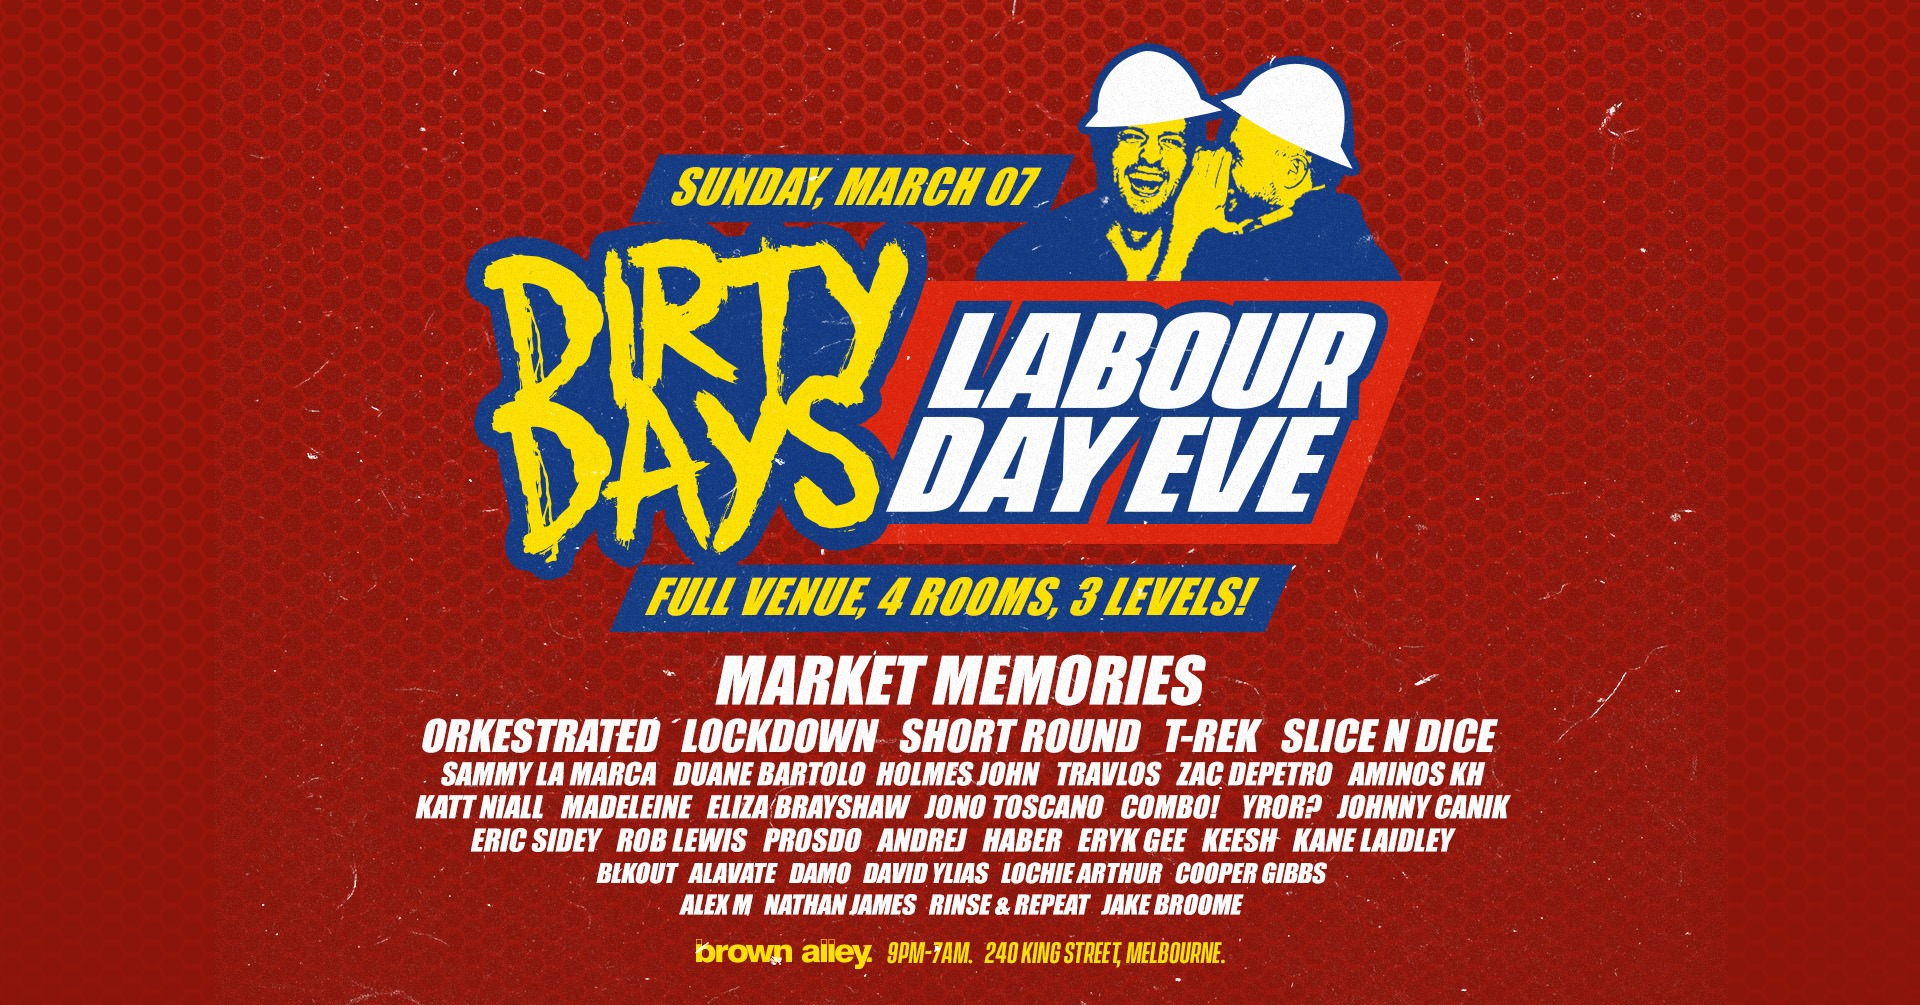 DIRTY DAYS • SUN 7TH MARCH • LABOUR DAY EVE